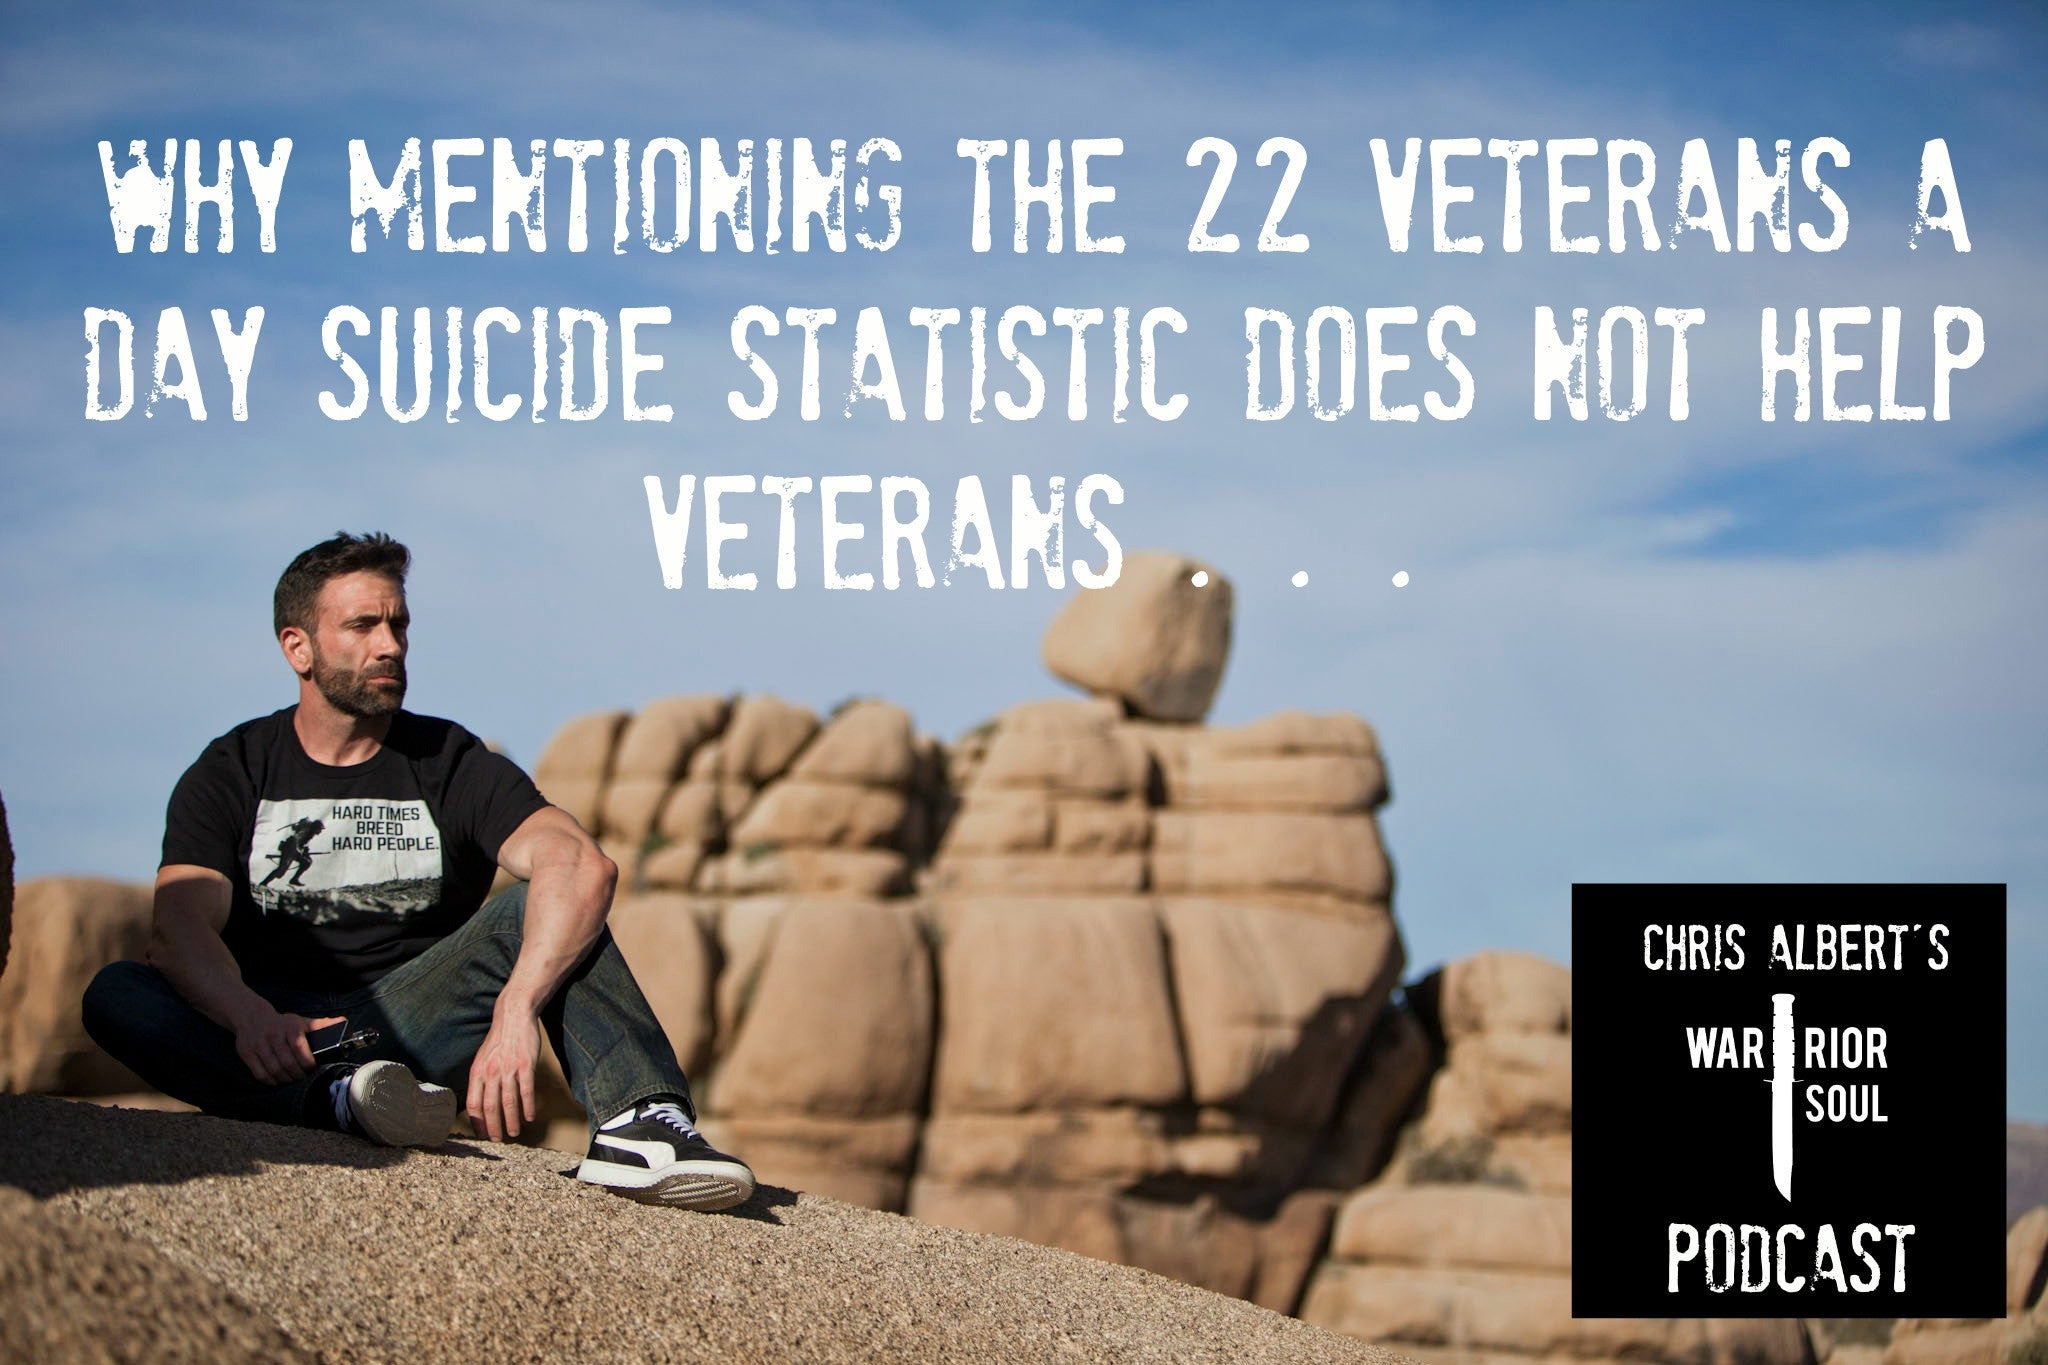 Why Mentioning Suicide Statistics, PTSD, or Depression Does Not Help Veterans